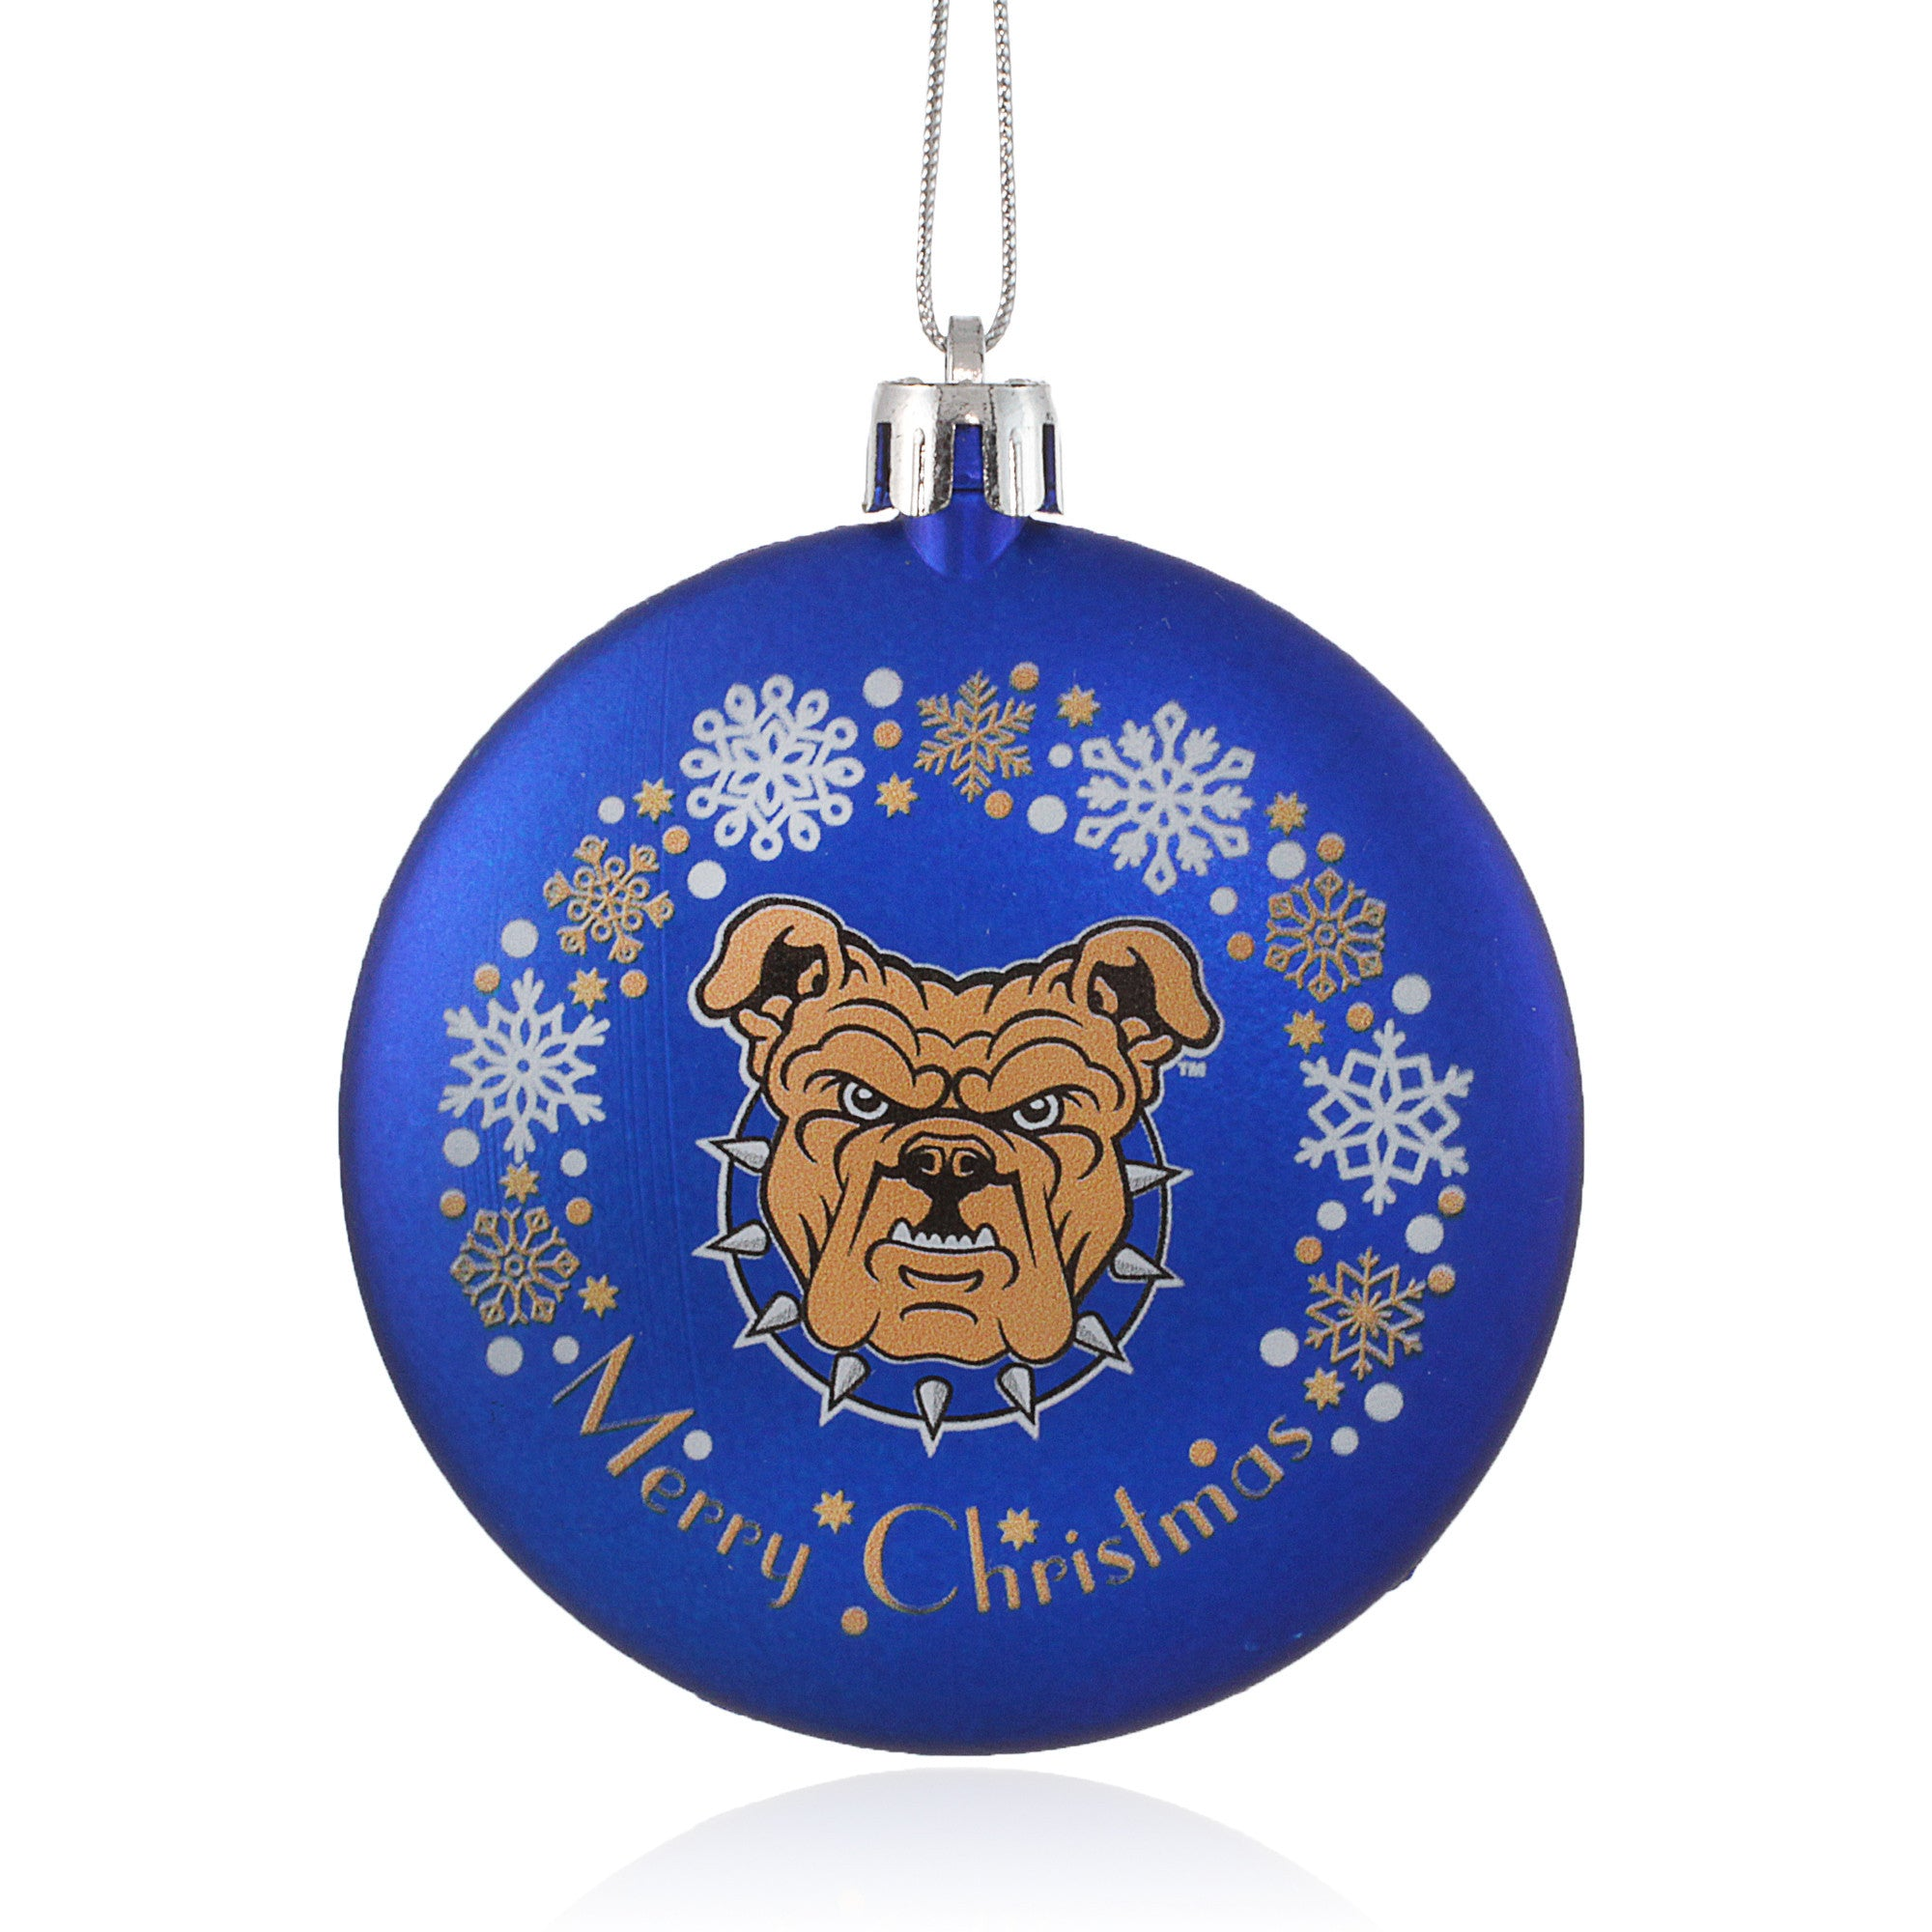 North Carolina A&T State University Christmas Ornament